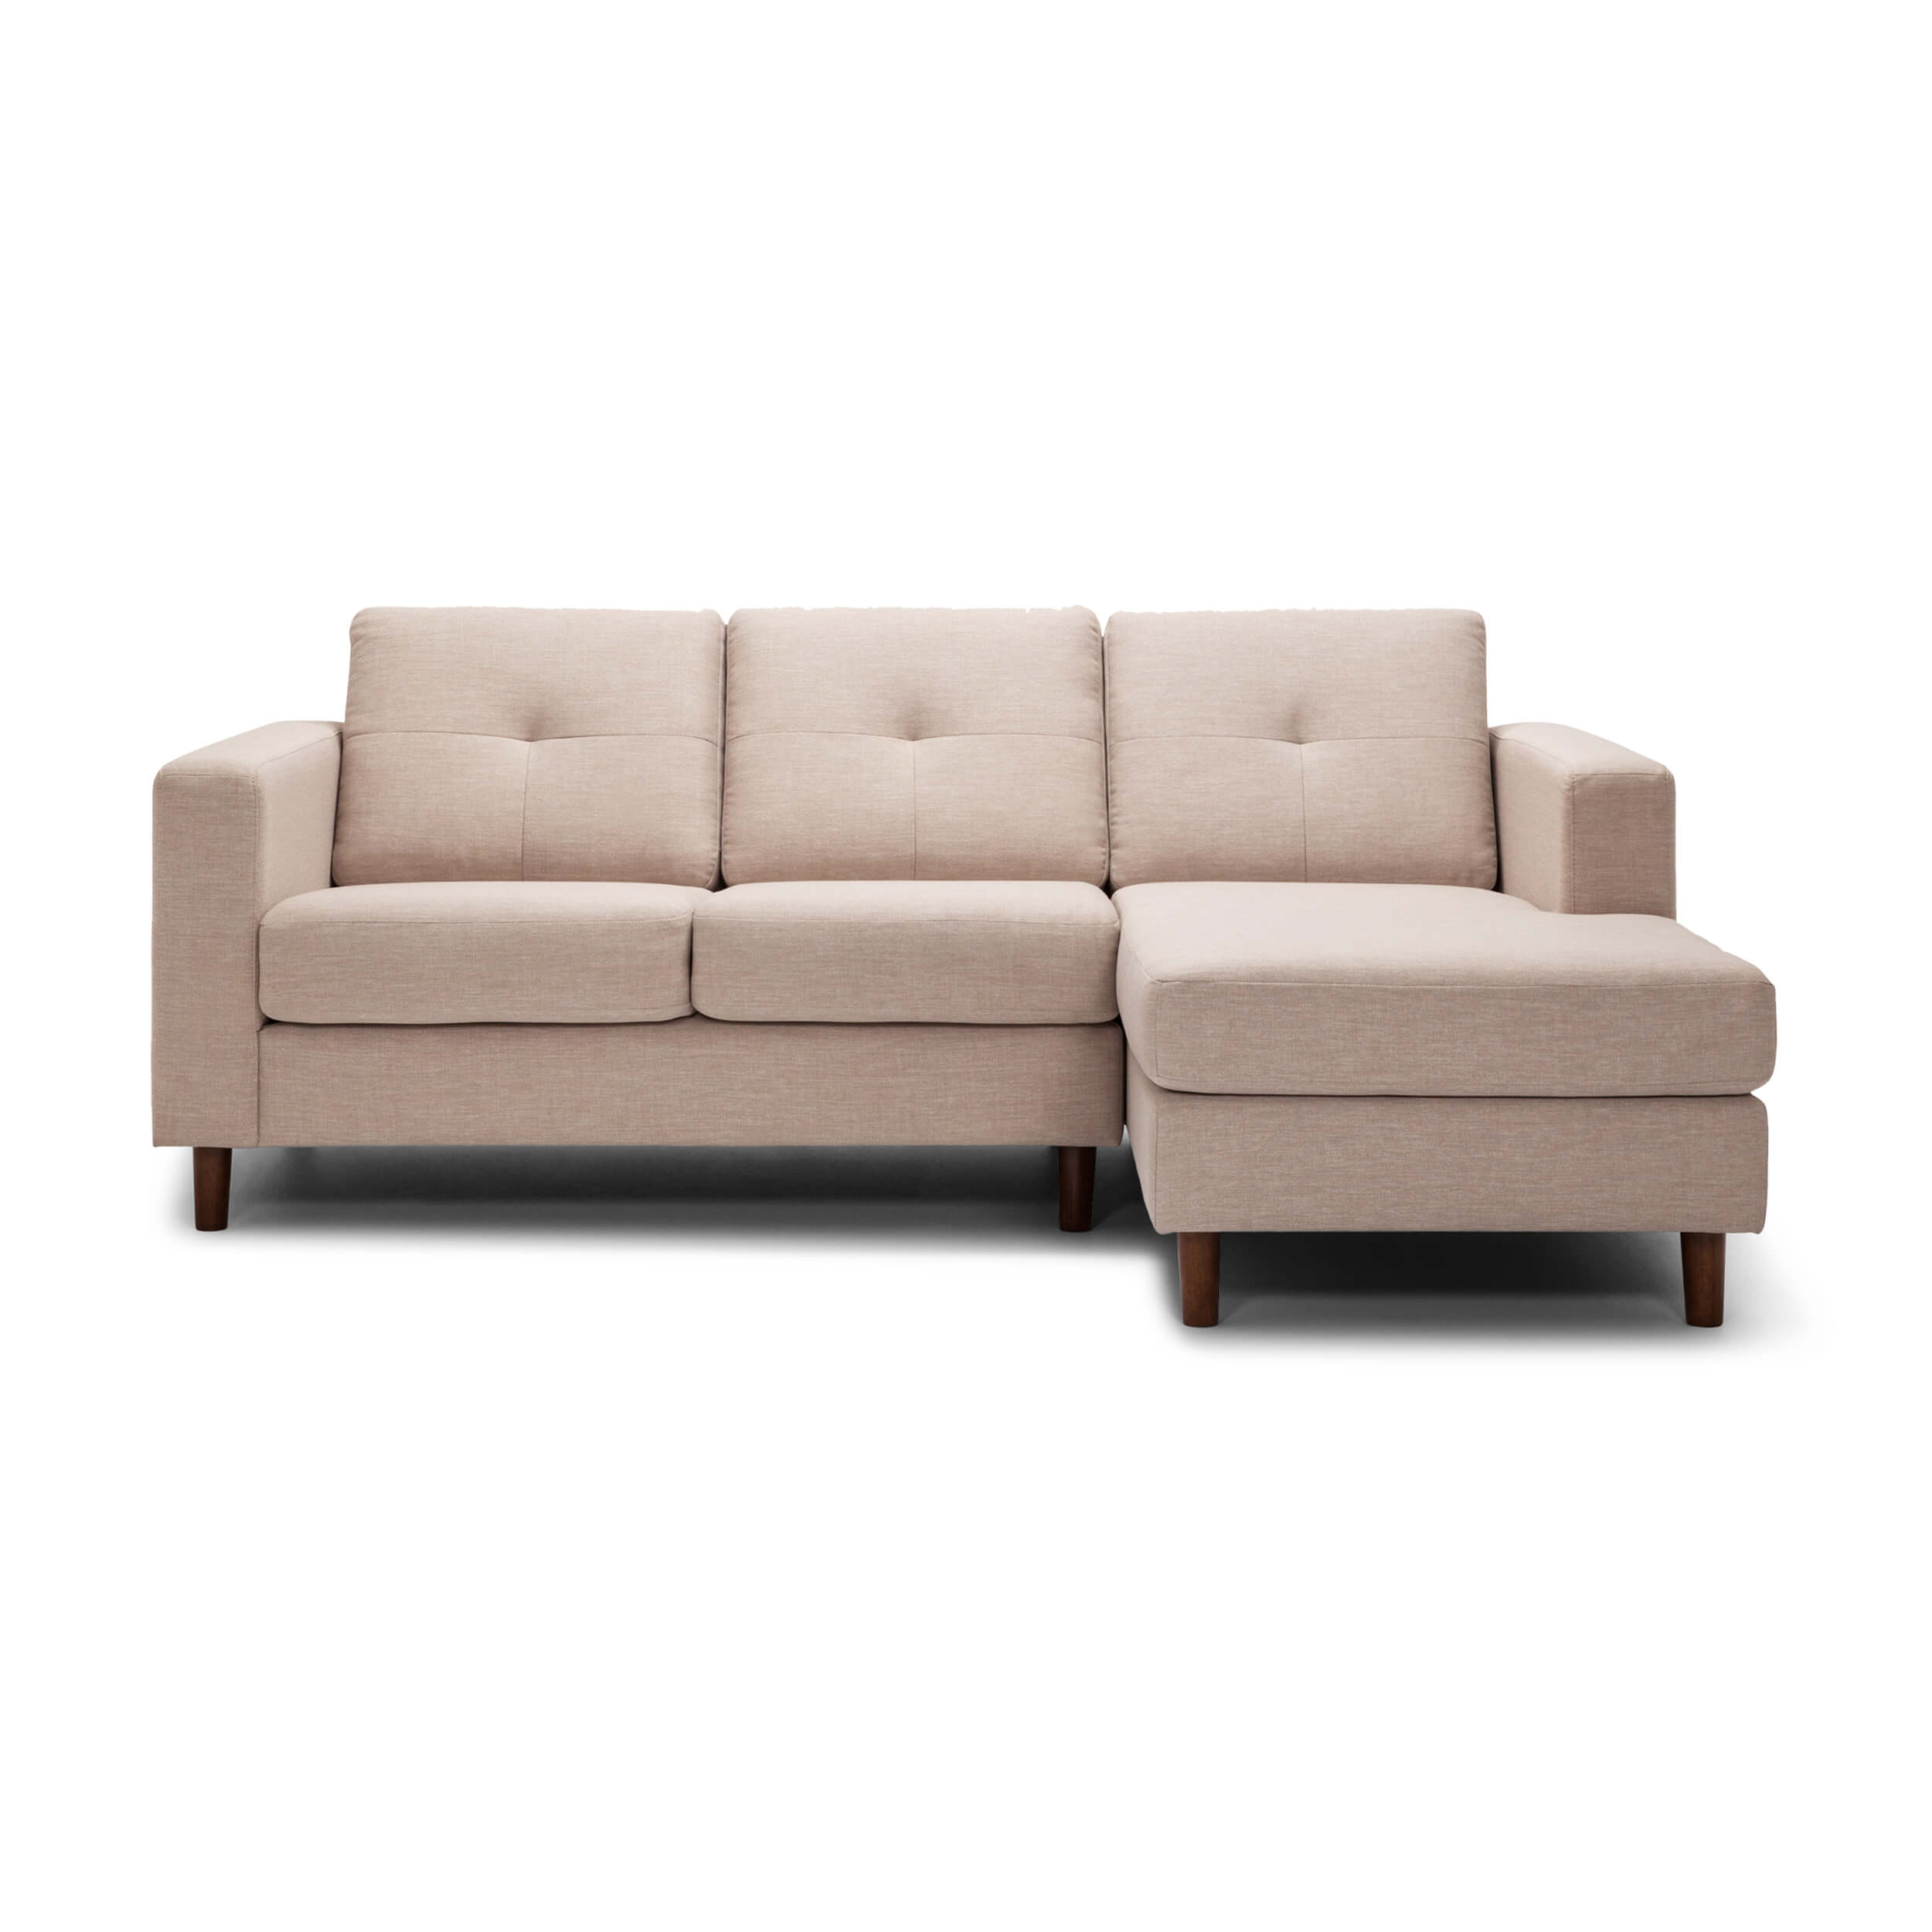 Solo 2-Piece Sectional Sofa With Chaise - Fabric